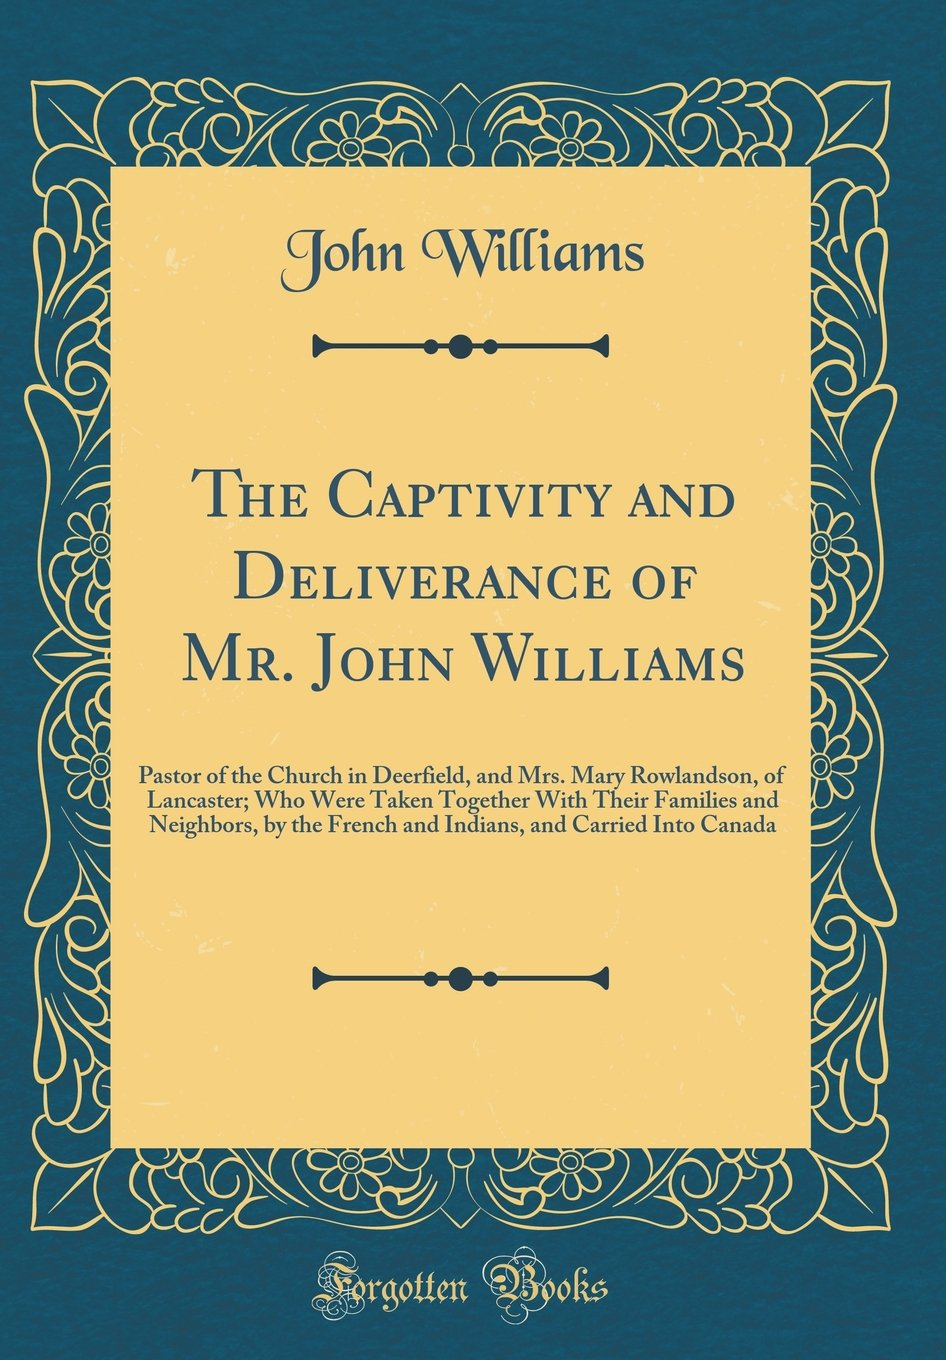 The Captivity and Deliverance of Mr. John Williams: Pastor of the Church in Deerfield, and Mrs. Mary Rowlandson, of Lancaster; Who Were Taken Together ... and Carried Into Canada (Classic Reprint) ePub fb2 book